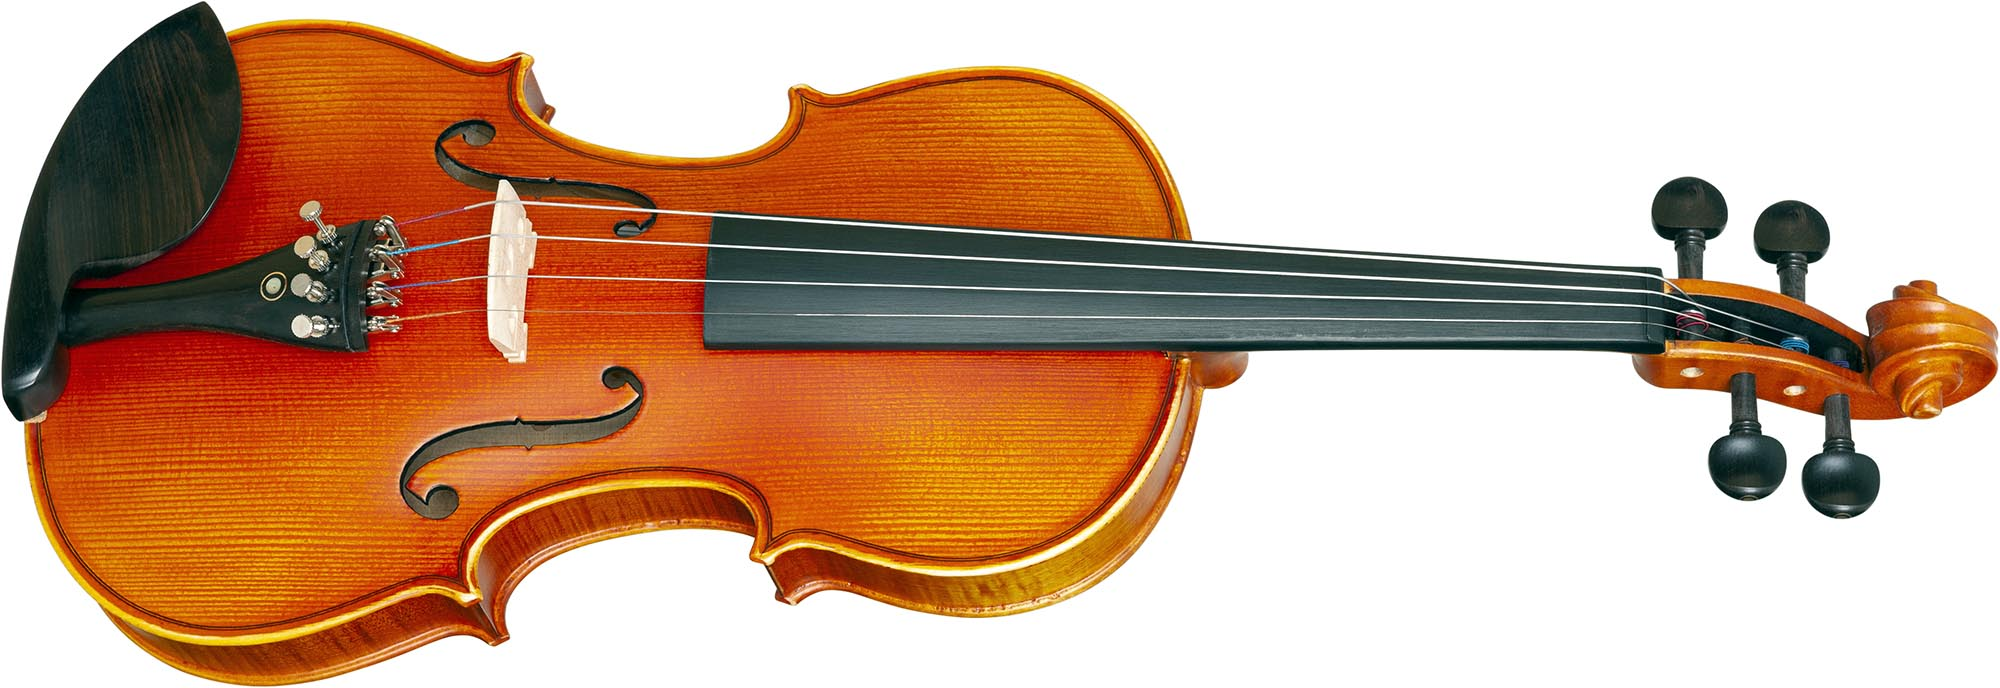 ve245 violino eagle ve245 visao frontal